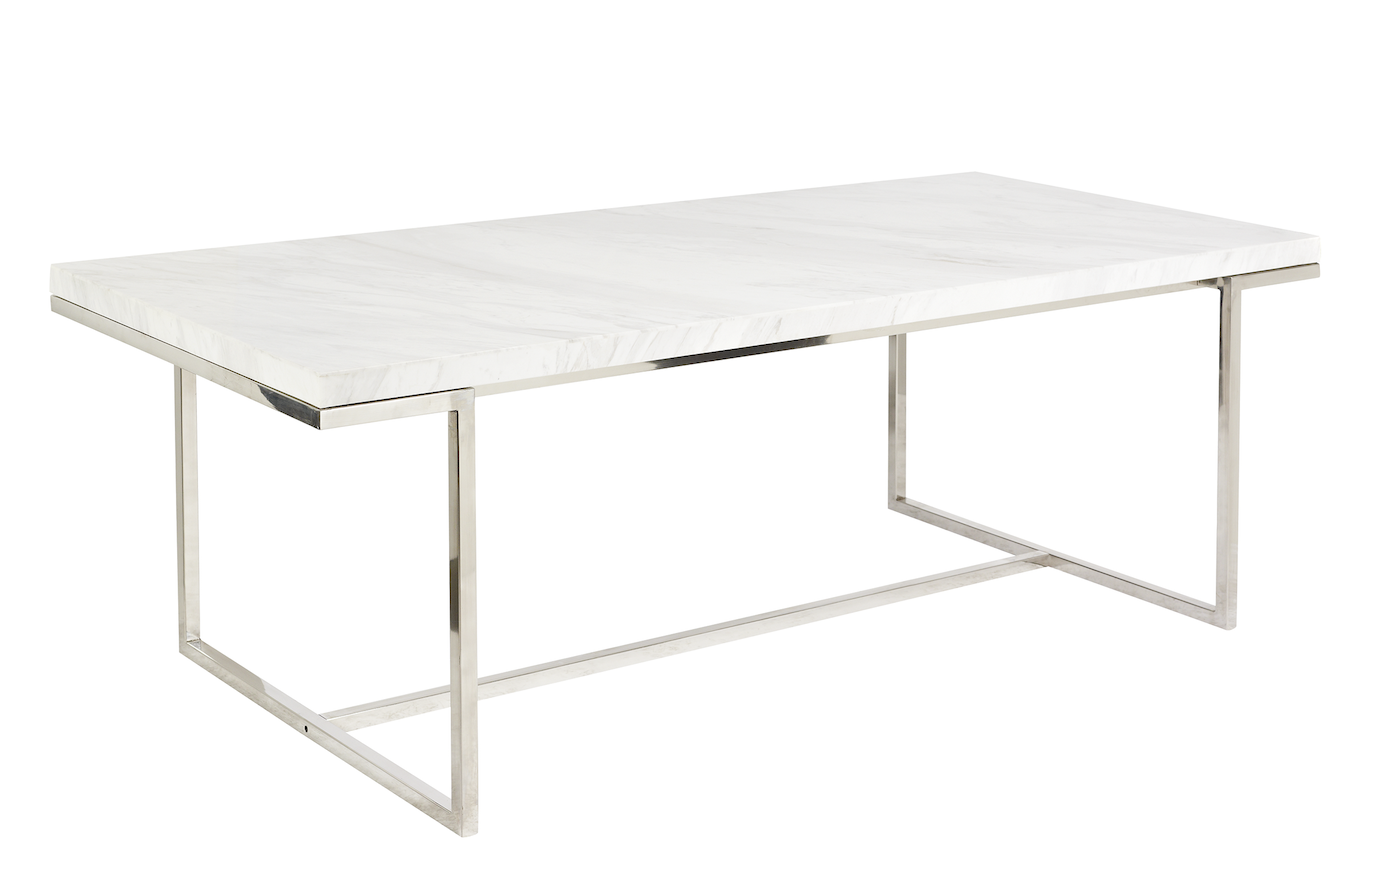 Keng Dining Table | Steel dining table, Furniture dining ...